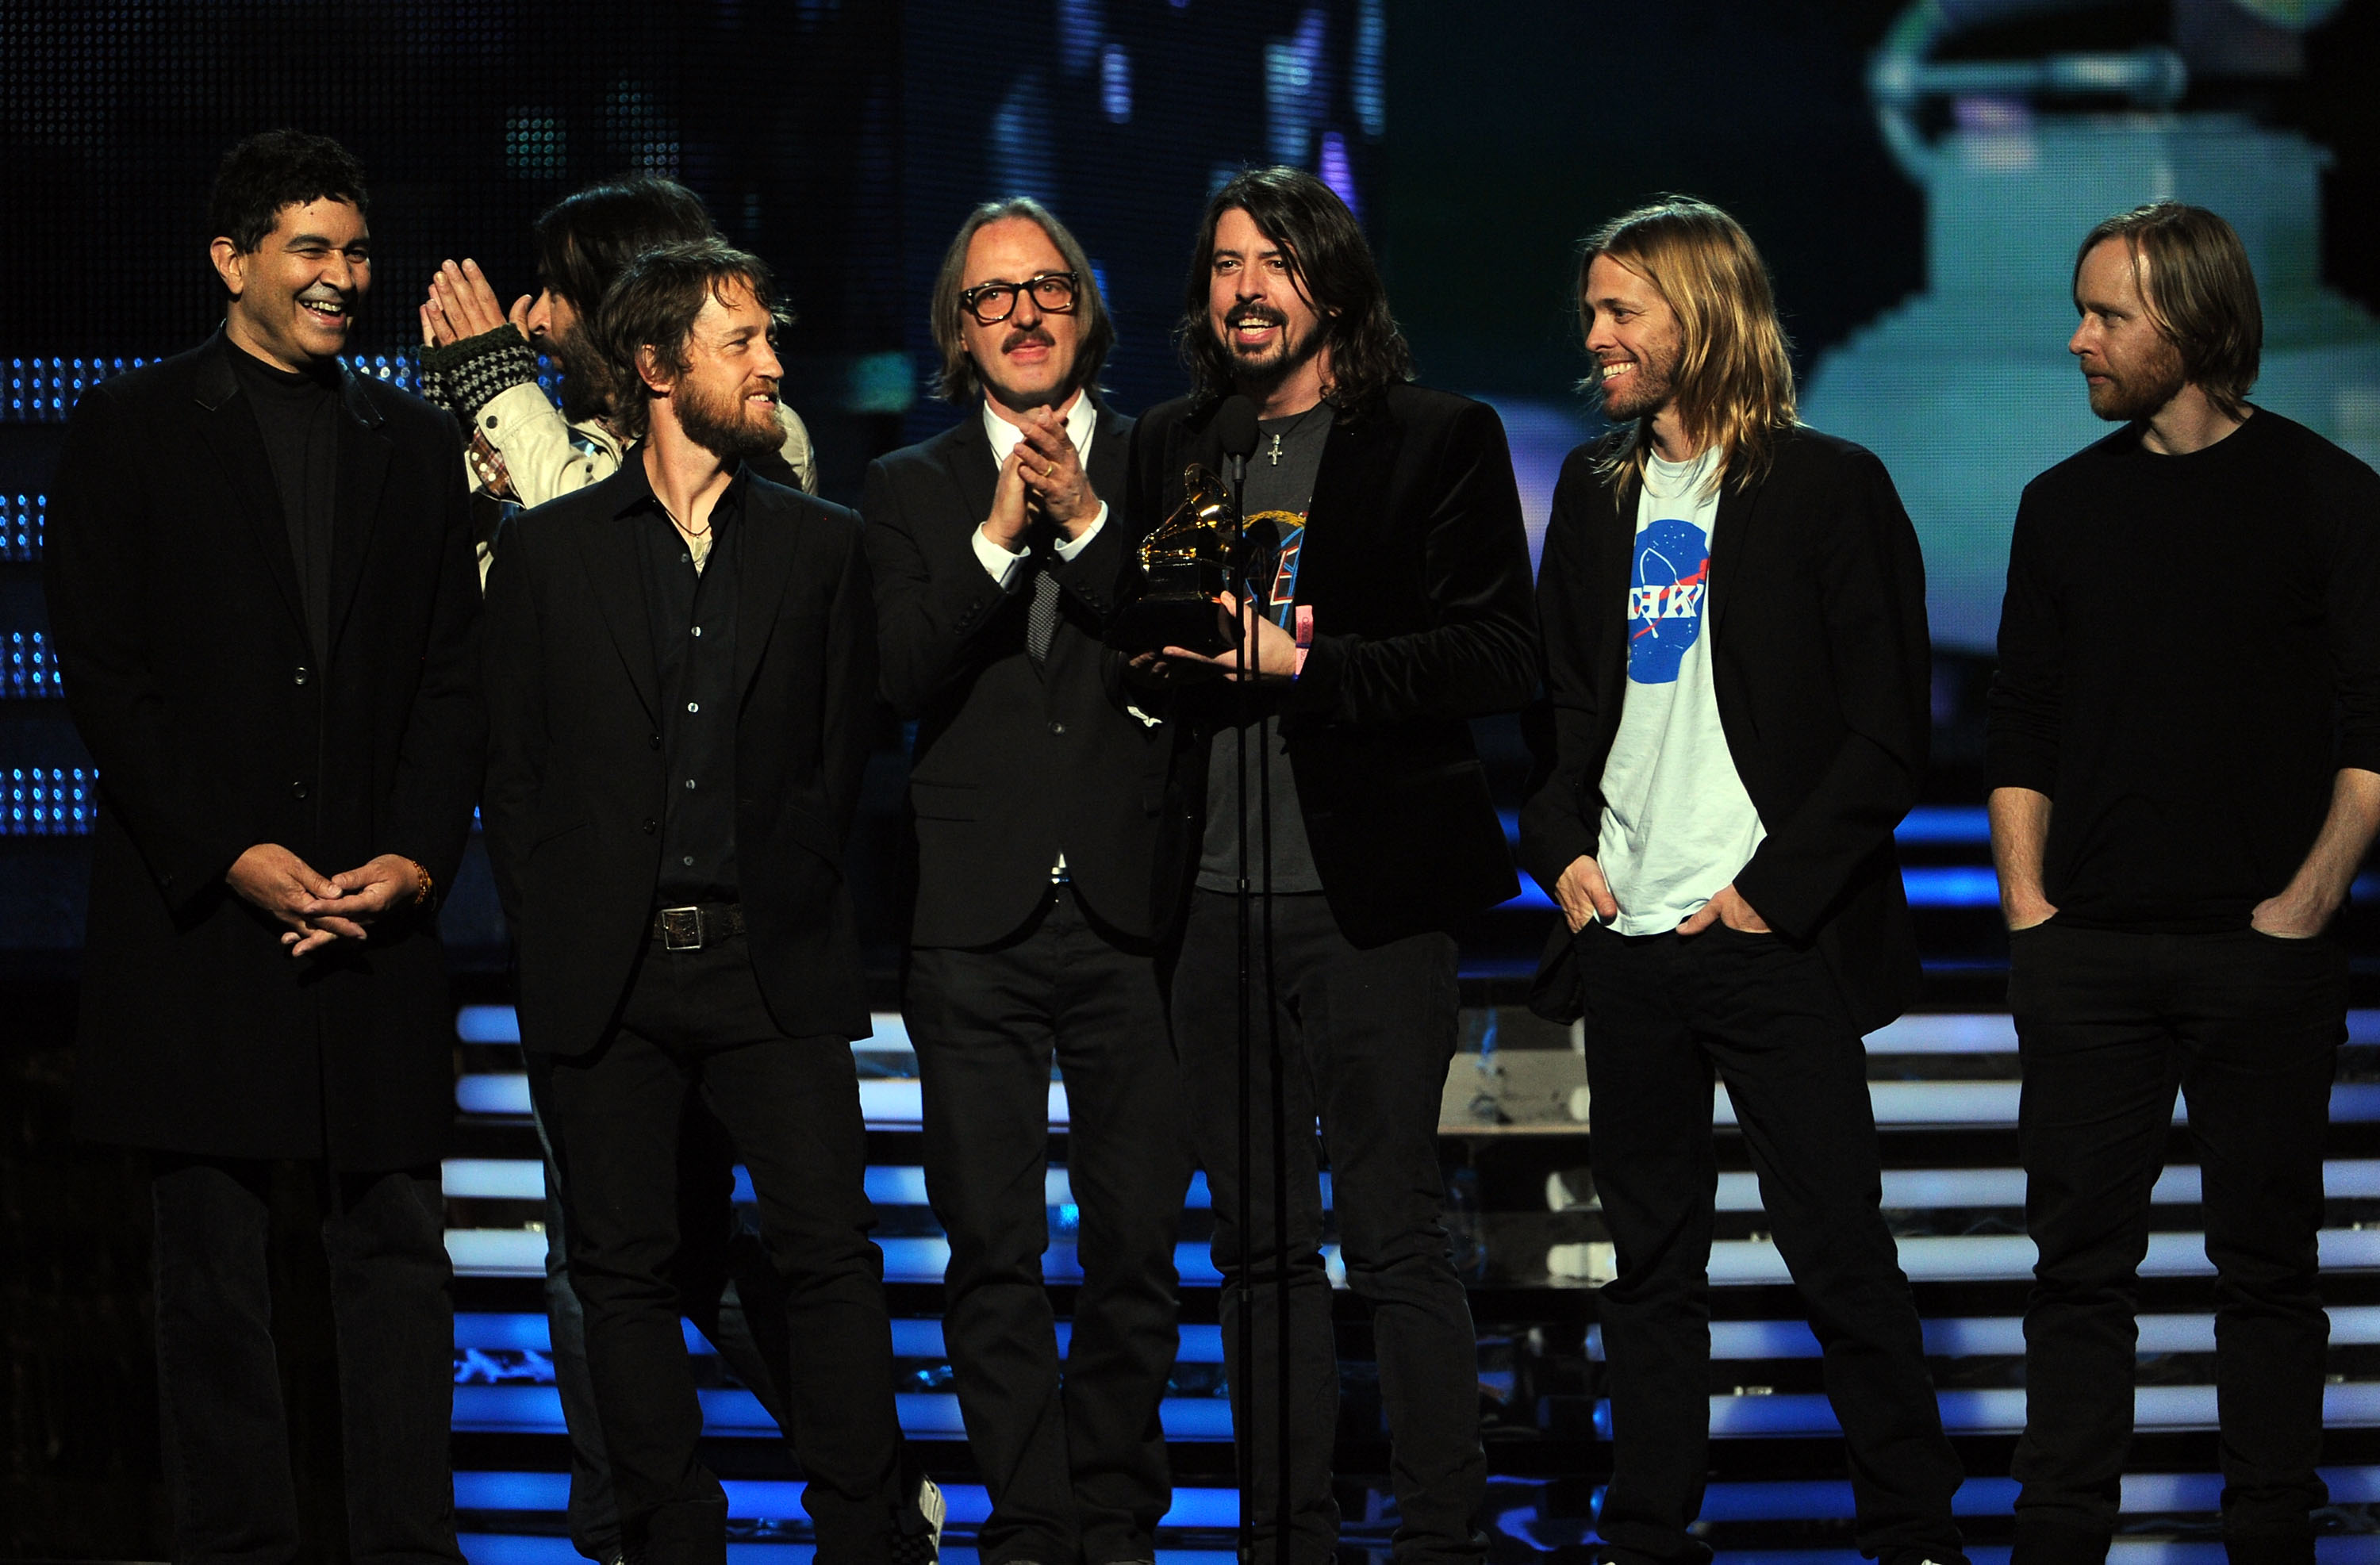 The Foo Fighters happily accepted th